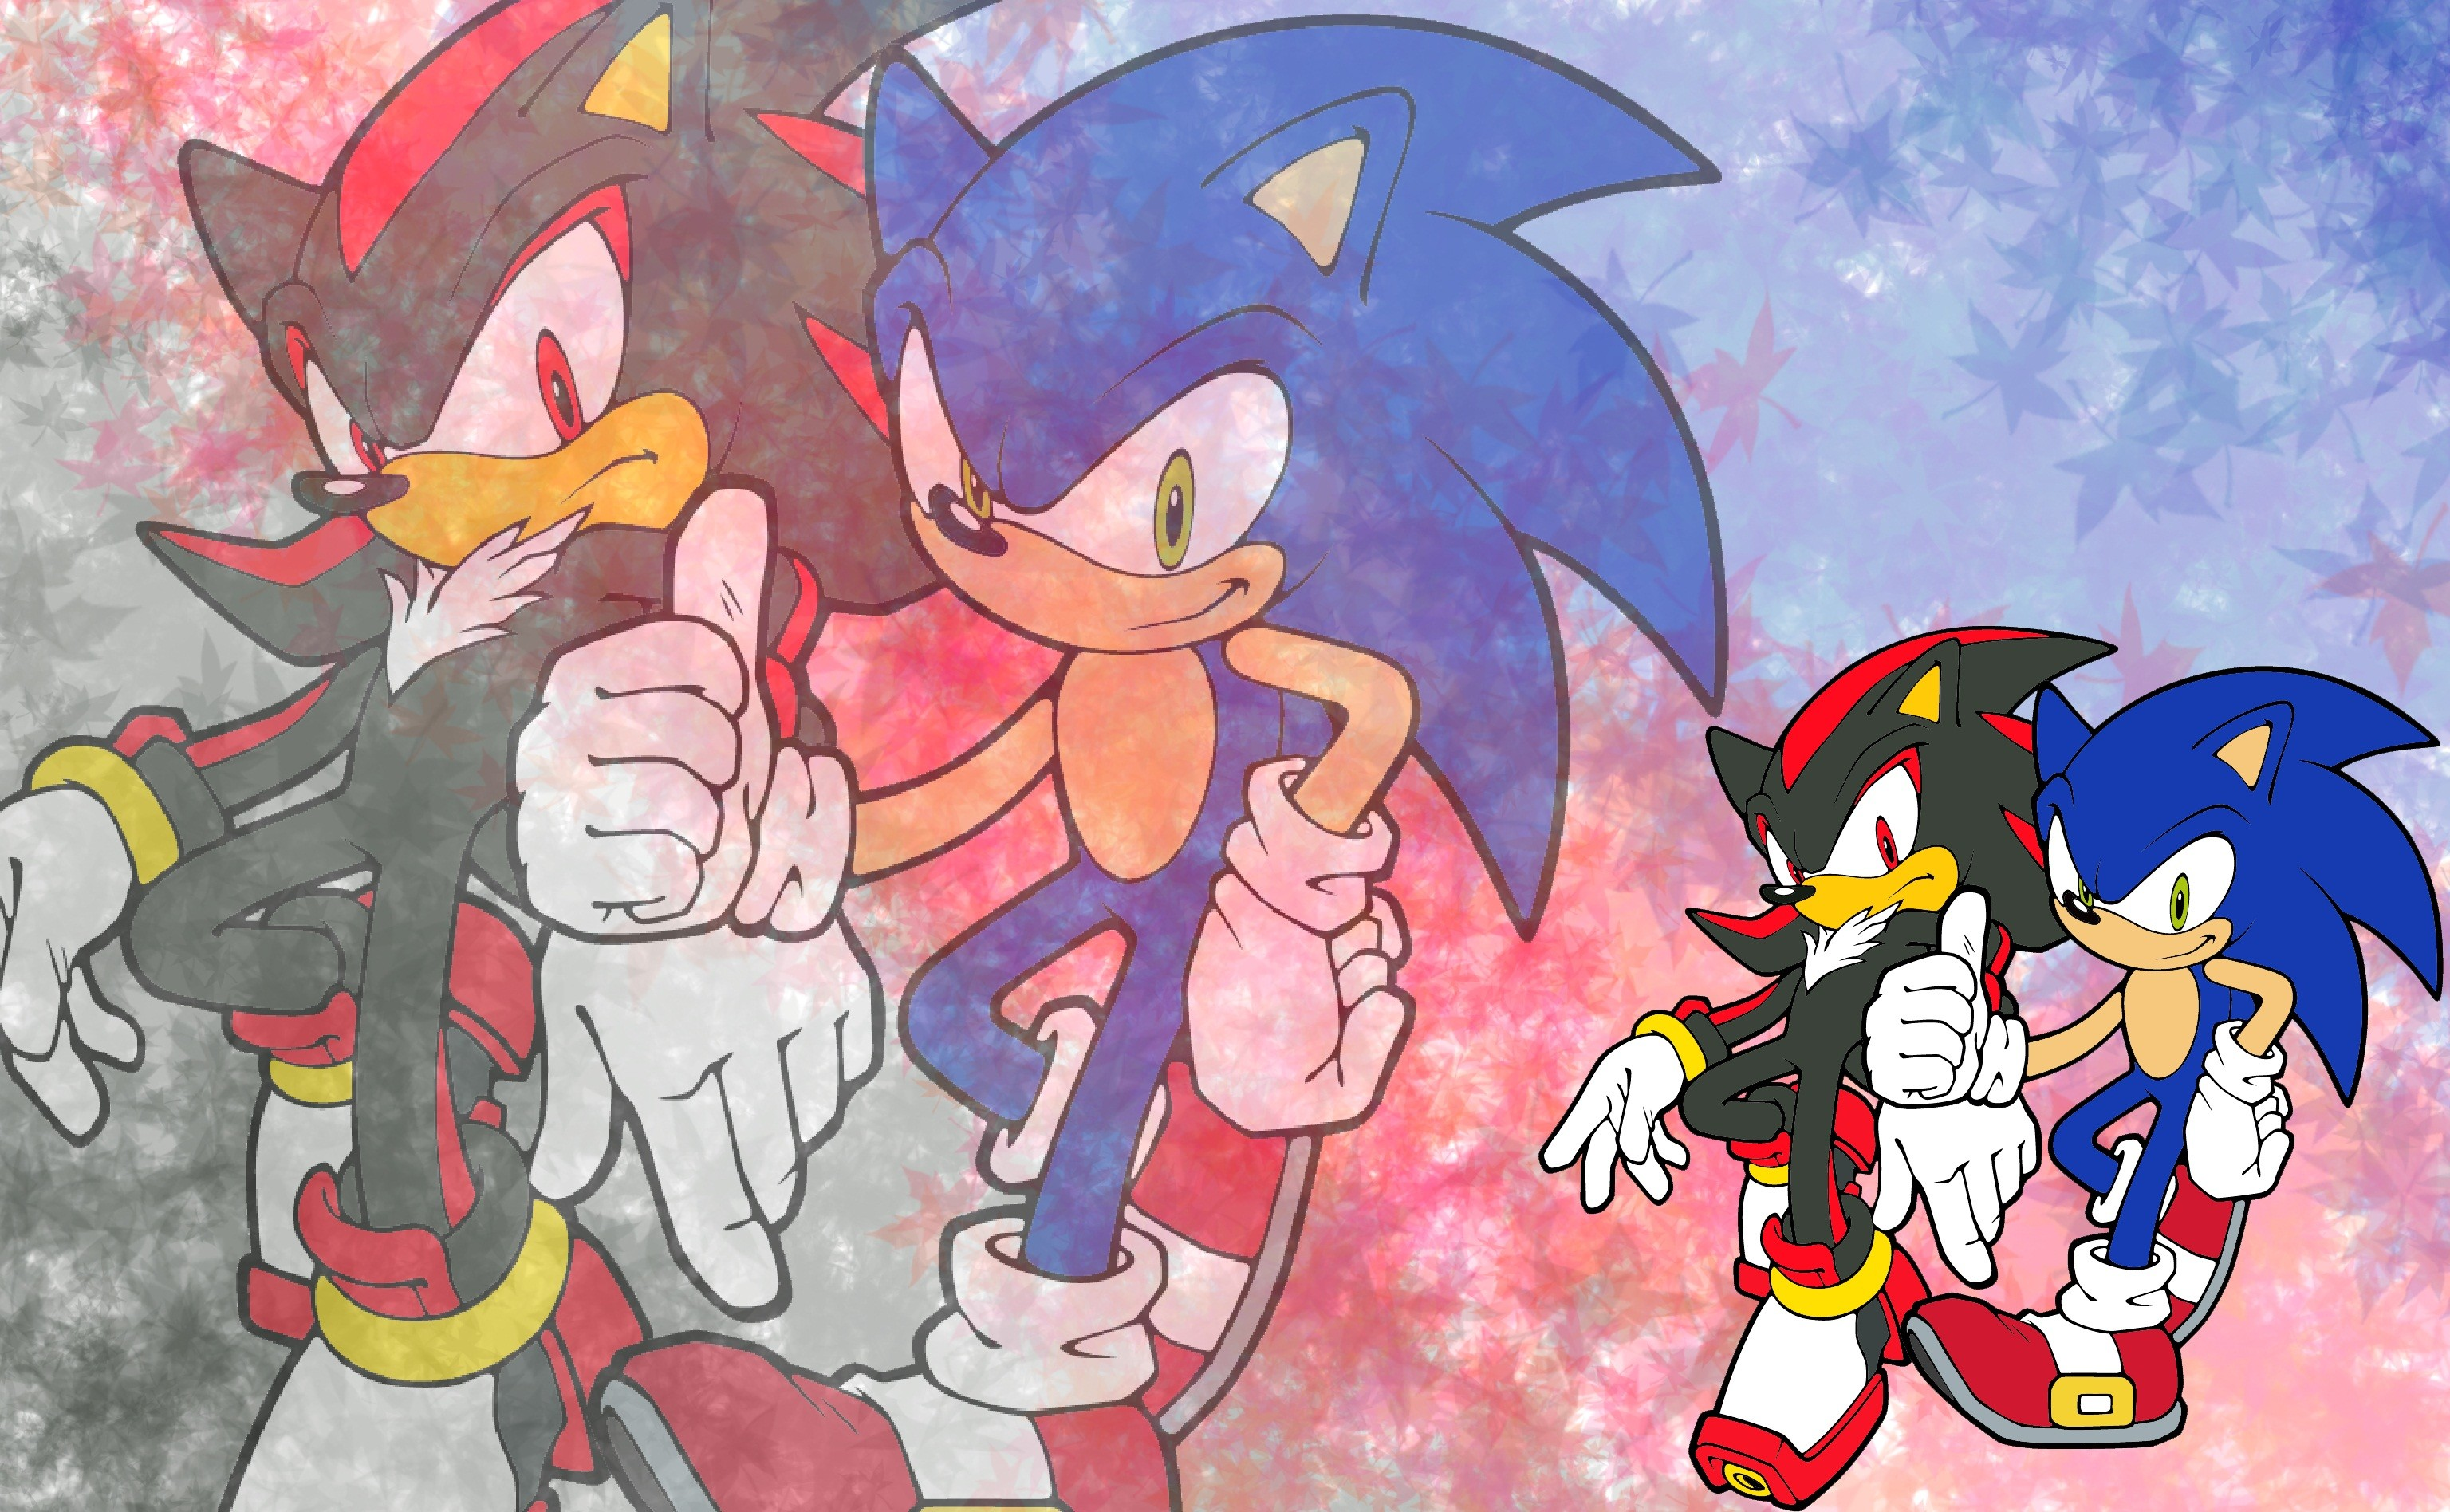 3072x1896 Video Game - Sonic Adventure 2 Sonic the Hedgehog Shadow the Hedgehog  Wallpaper